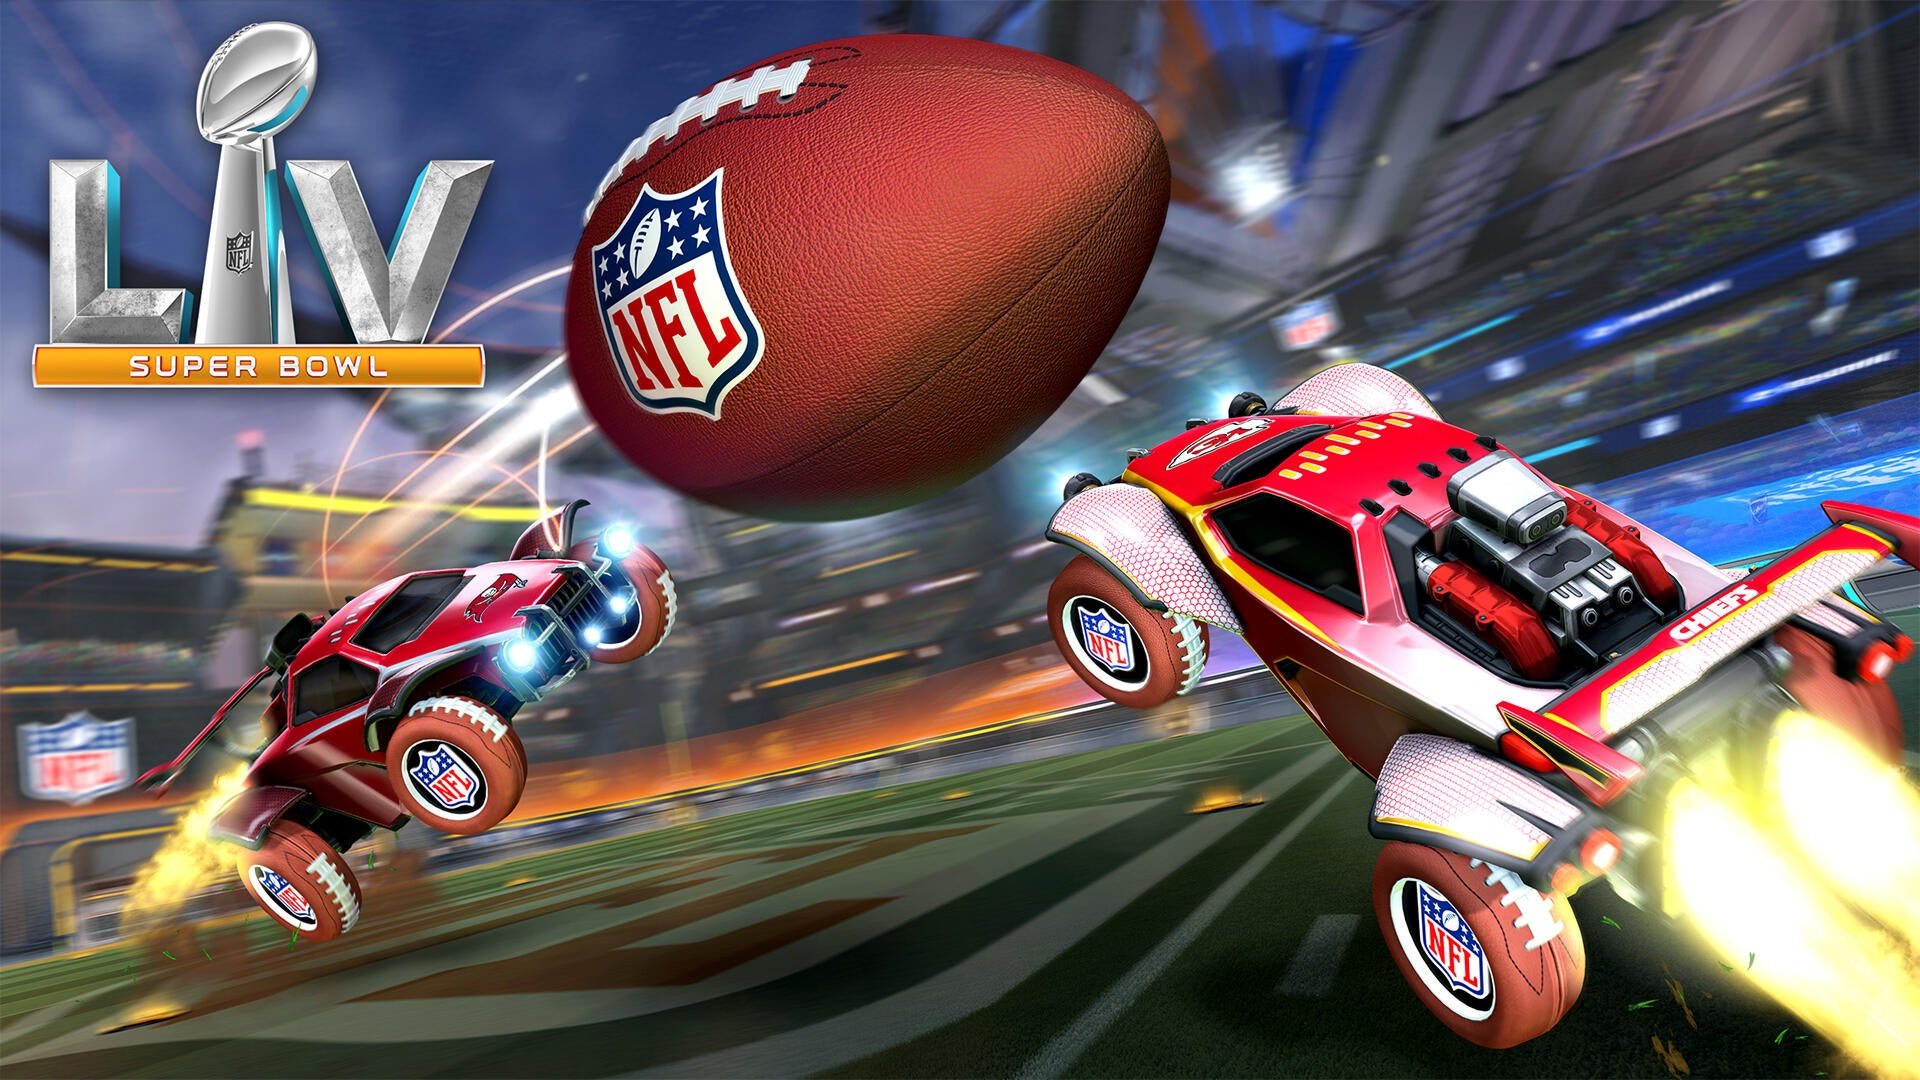 Hora de celebrar o NFL Super Bowl LV no Rocket League Image